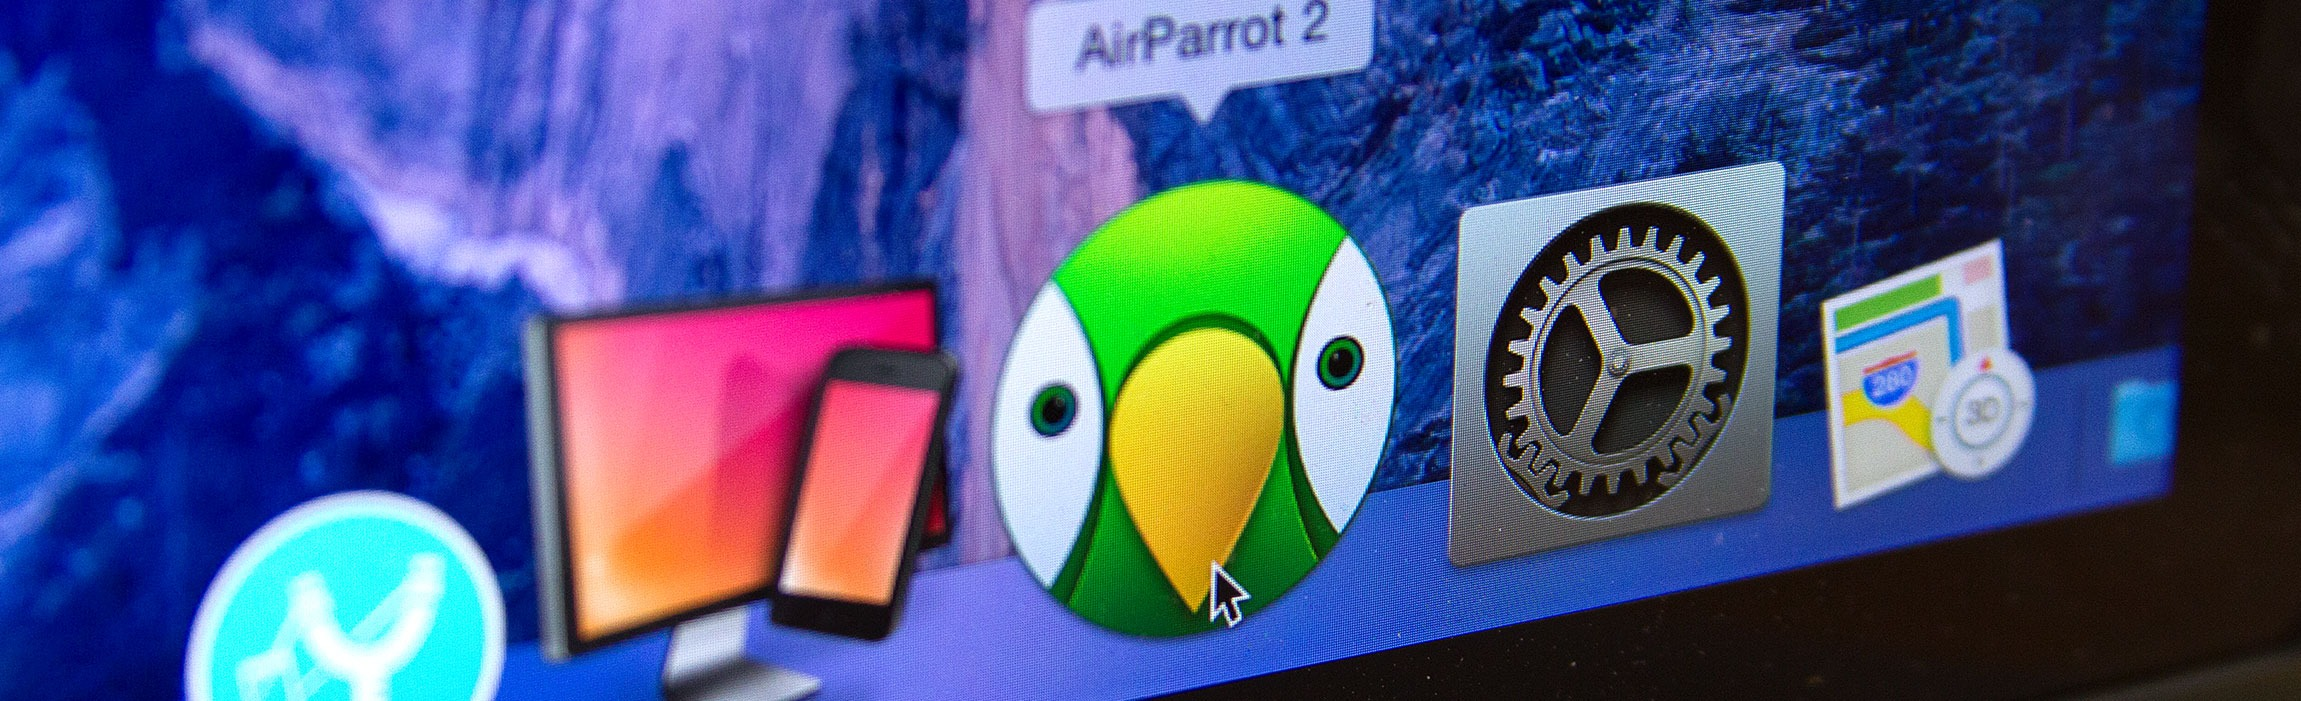 Open AirParrot from Applications